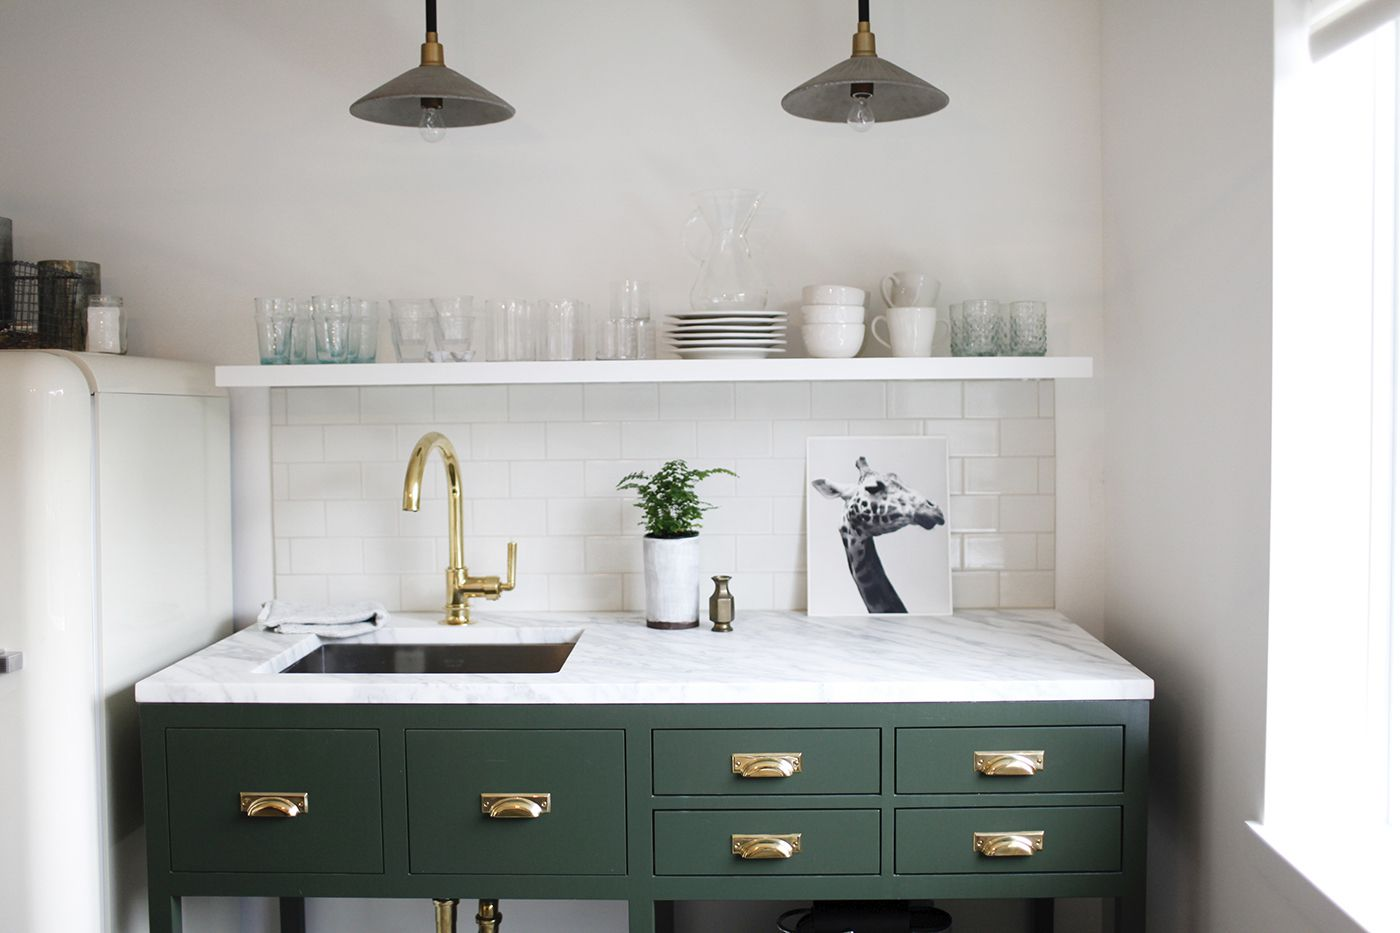 A light-filled kitchen with green cabinets